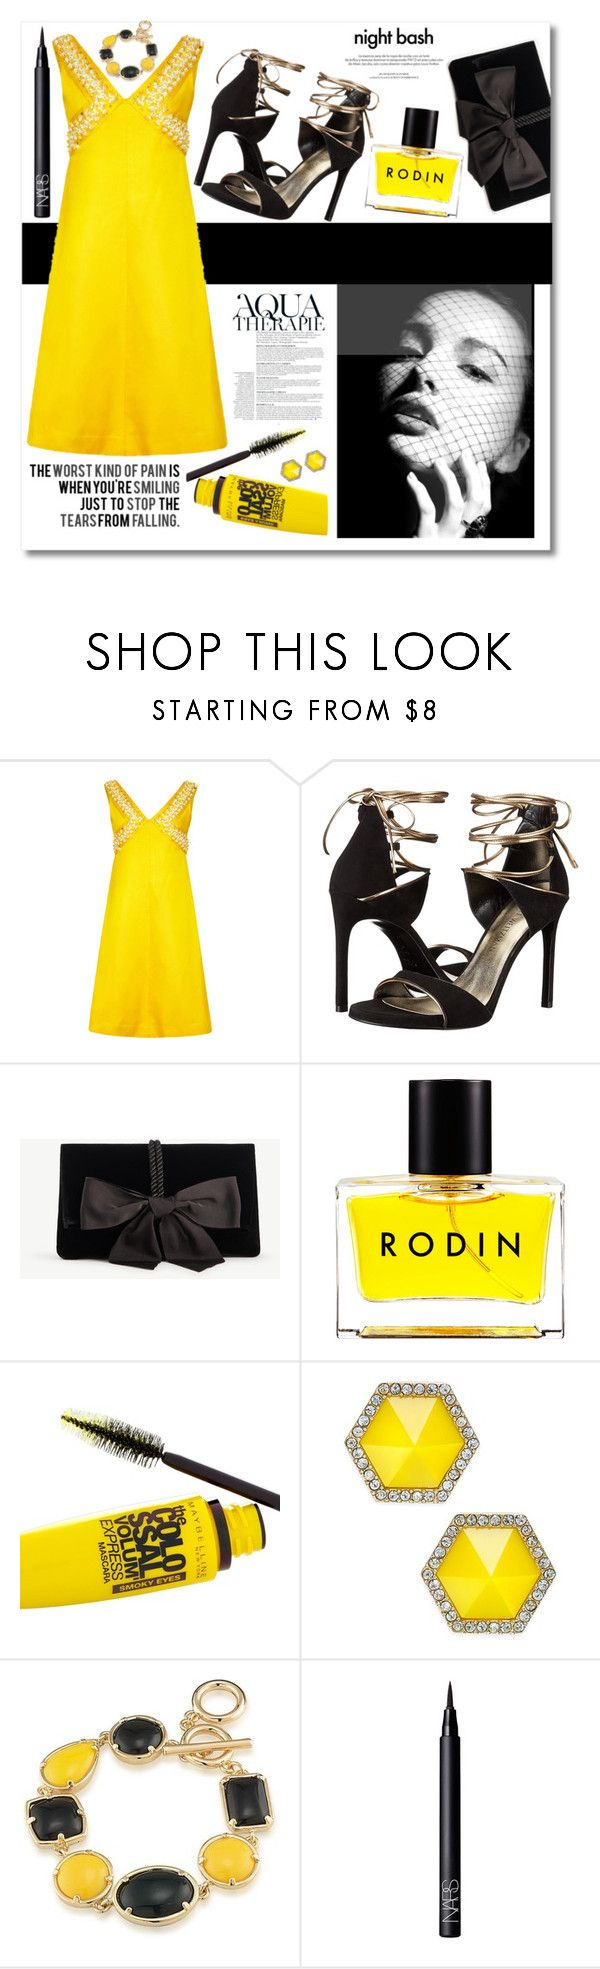 """Untitled #114"" by biinabnab ❤ liked on Polyvore featuring Stuart Weitzman, Ann Taylor, Rodin, Maybelline, Love Quotes Scarves, Anja, Louis Vuitton, ABS by Allen Schwartz, 1st & Gorgeous by Carolee and NARS Cosmetics"